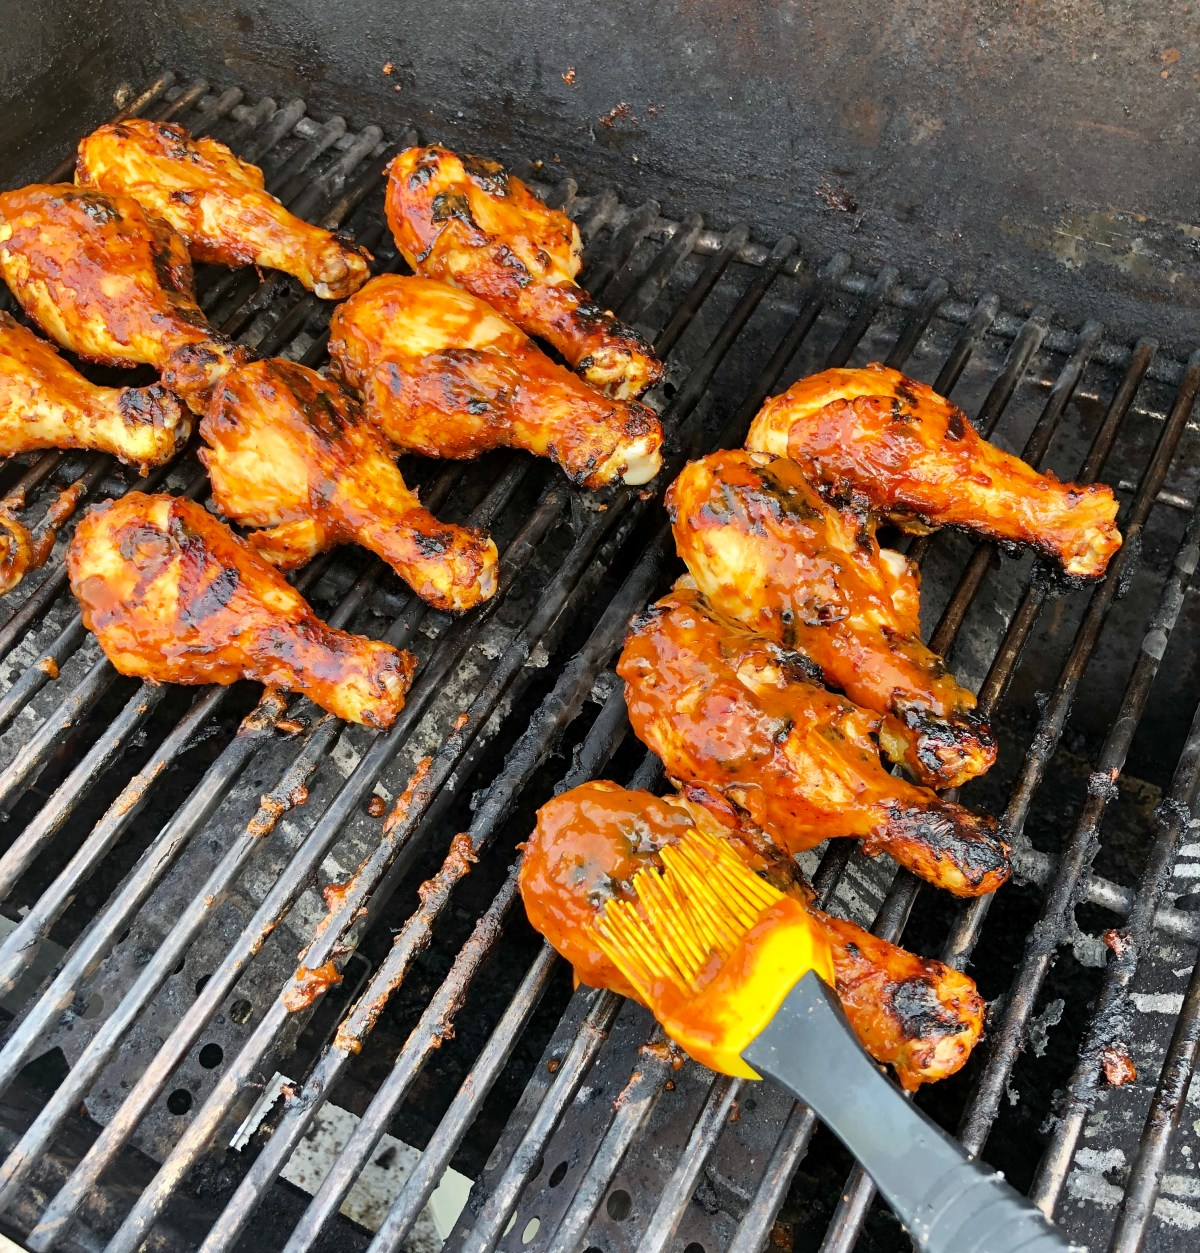 Chicken drumsticks cooking on a grill rack.